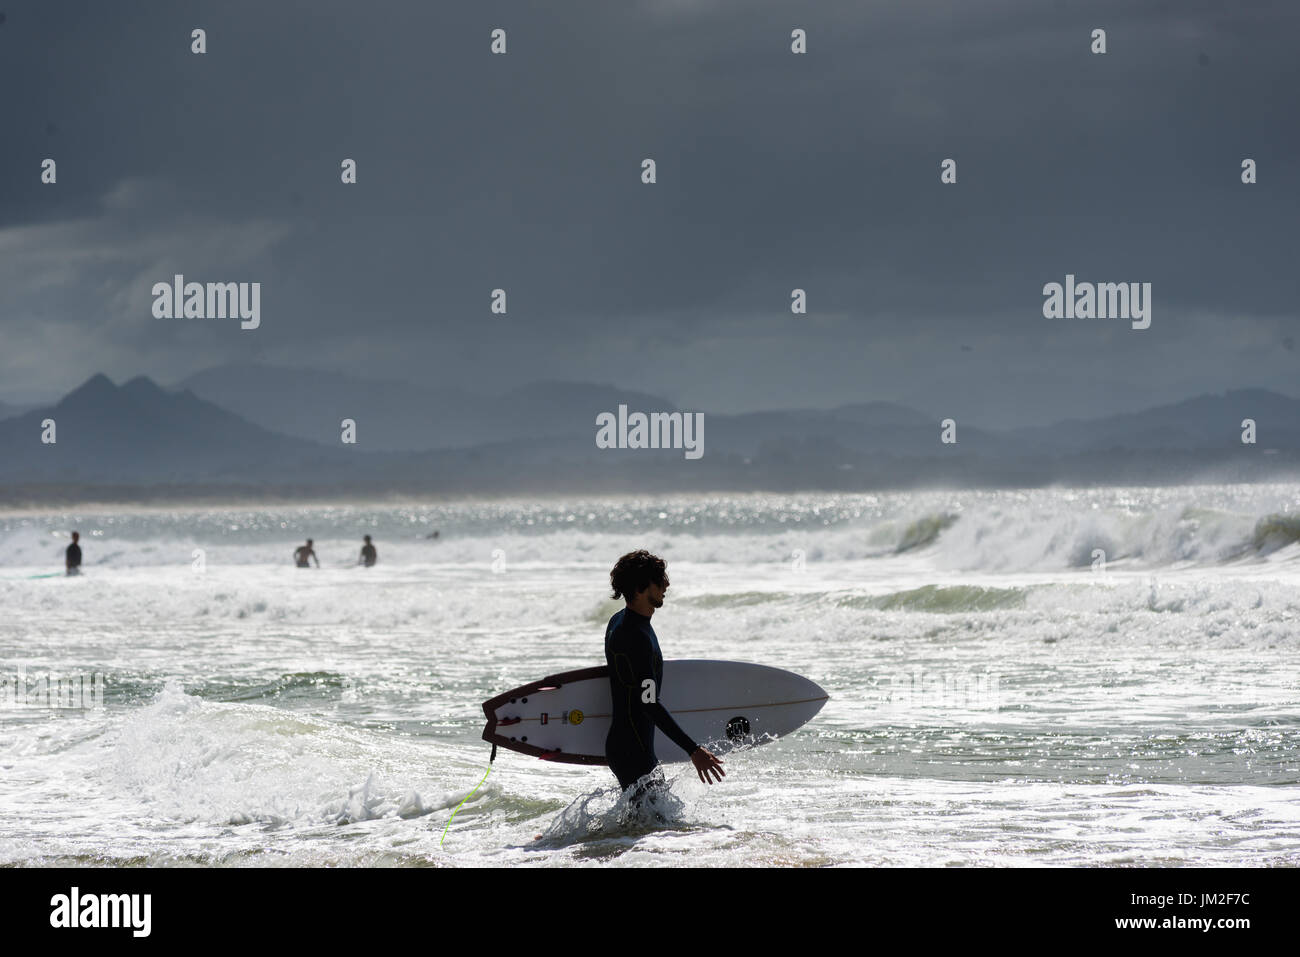 surfing-at-the-wreck-off-belongil-beach-